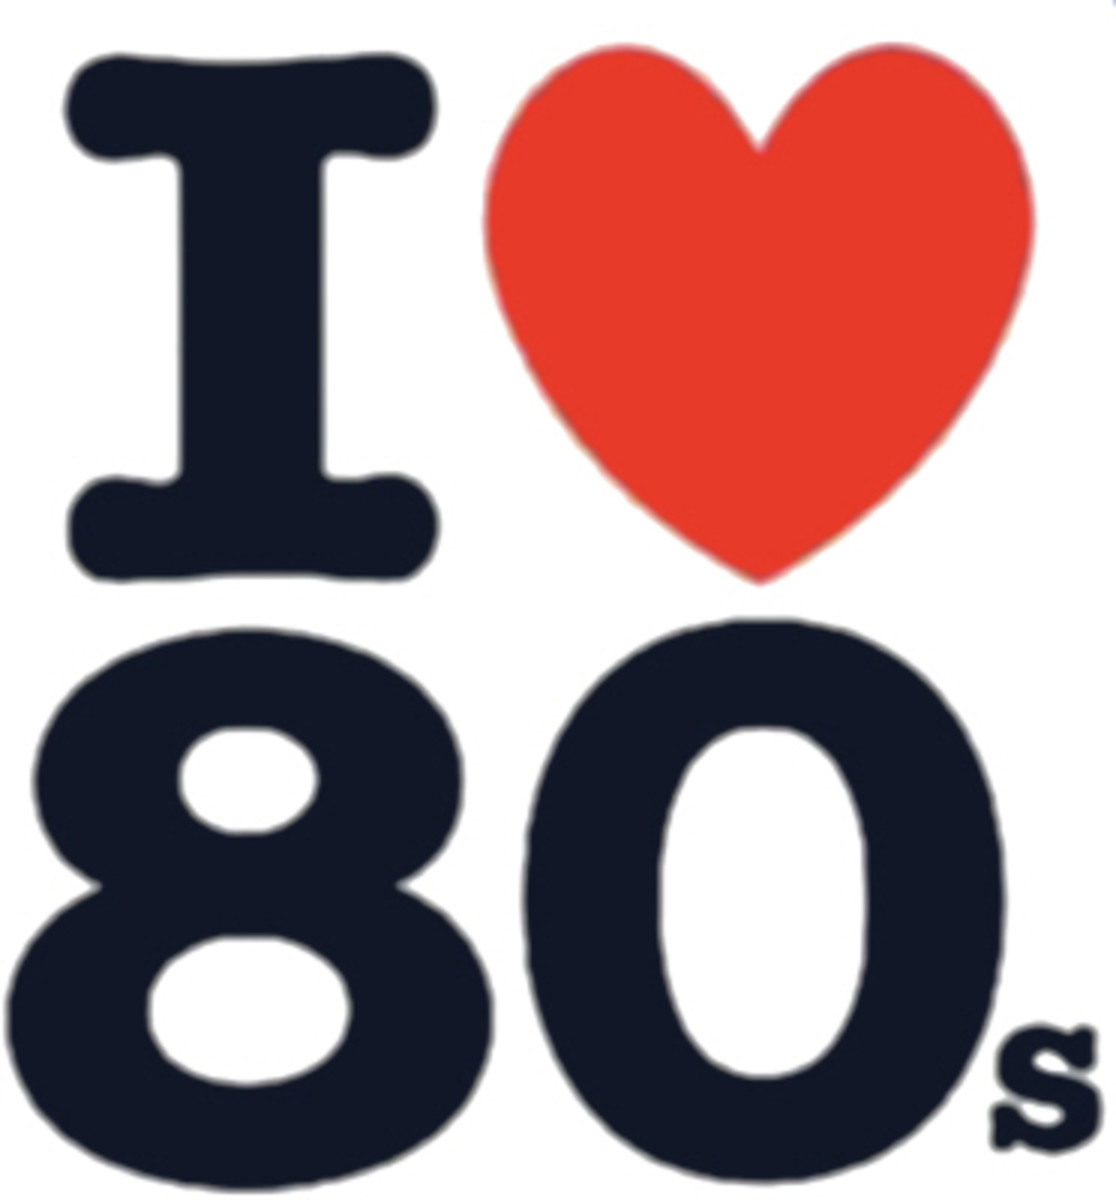 most-popular-freestyle-dance-music-of-the-80s